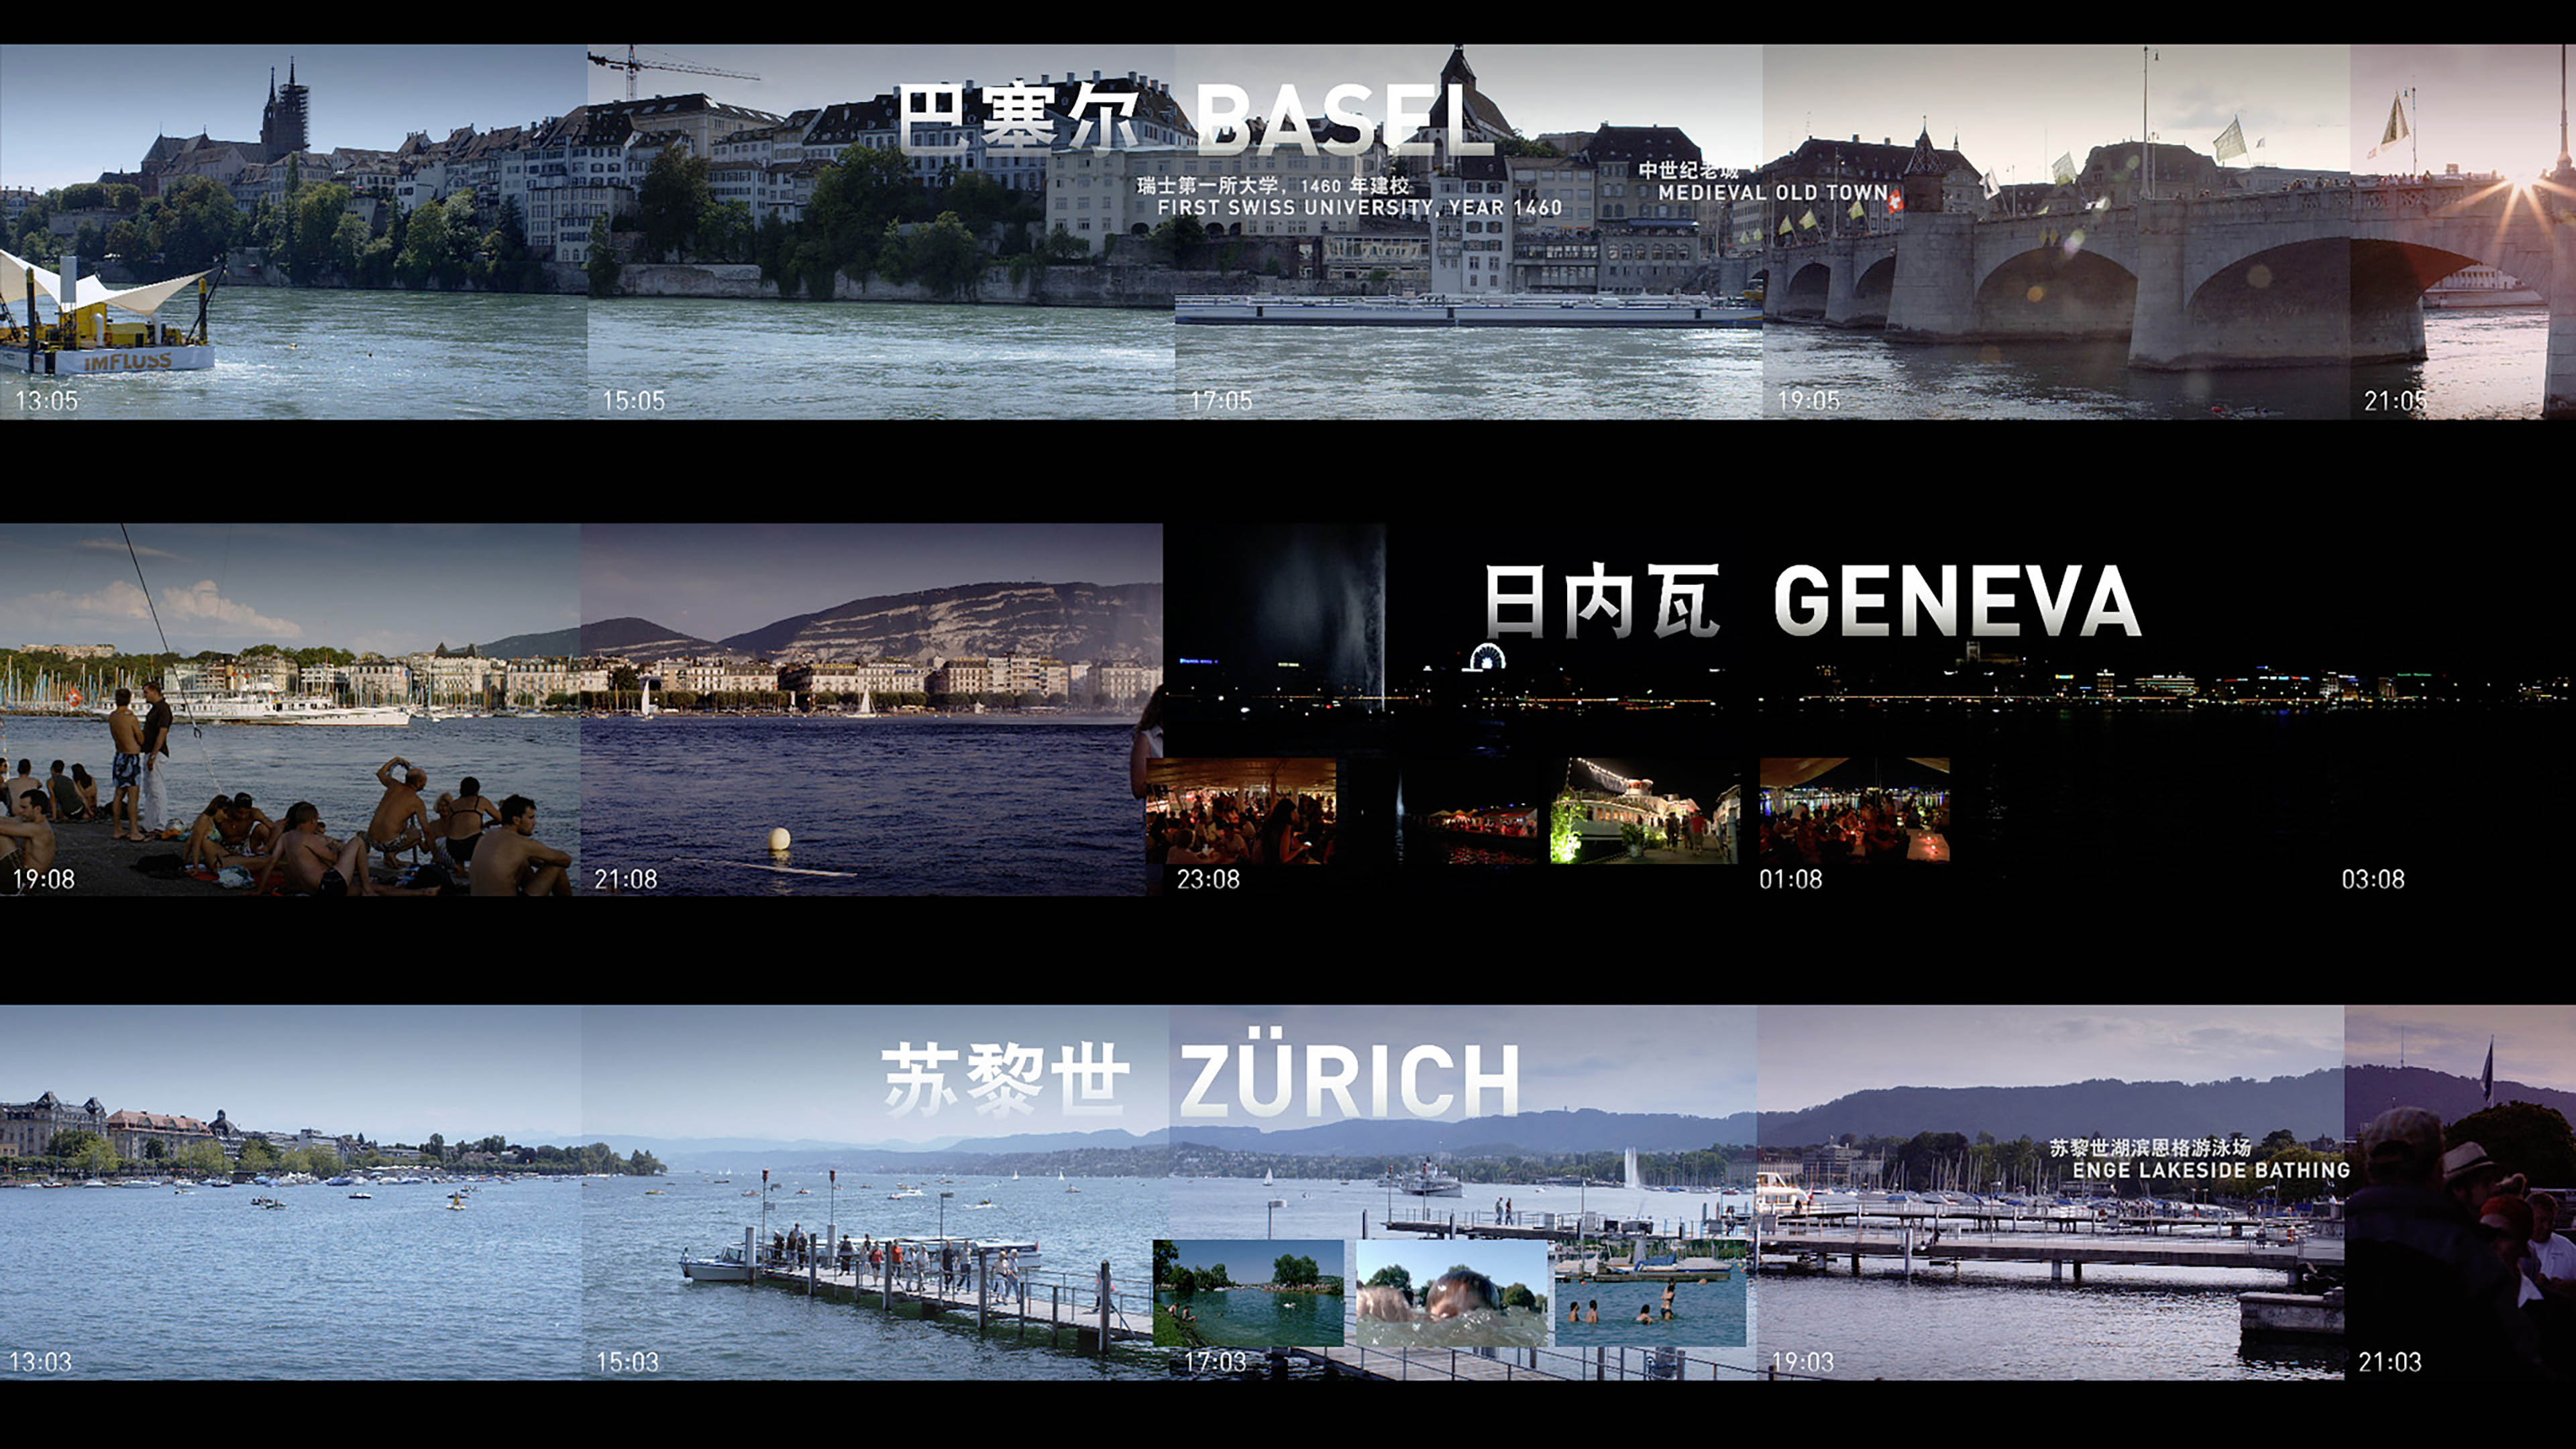 Better water – best urban life, Film Editing, Compositing, Grading, Motion Design, Animation, Making of, Michael Frei, Zurich